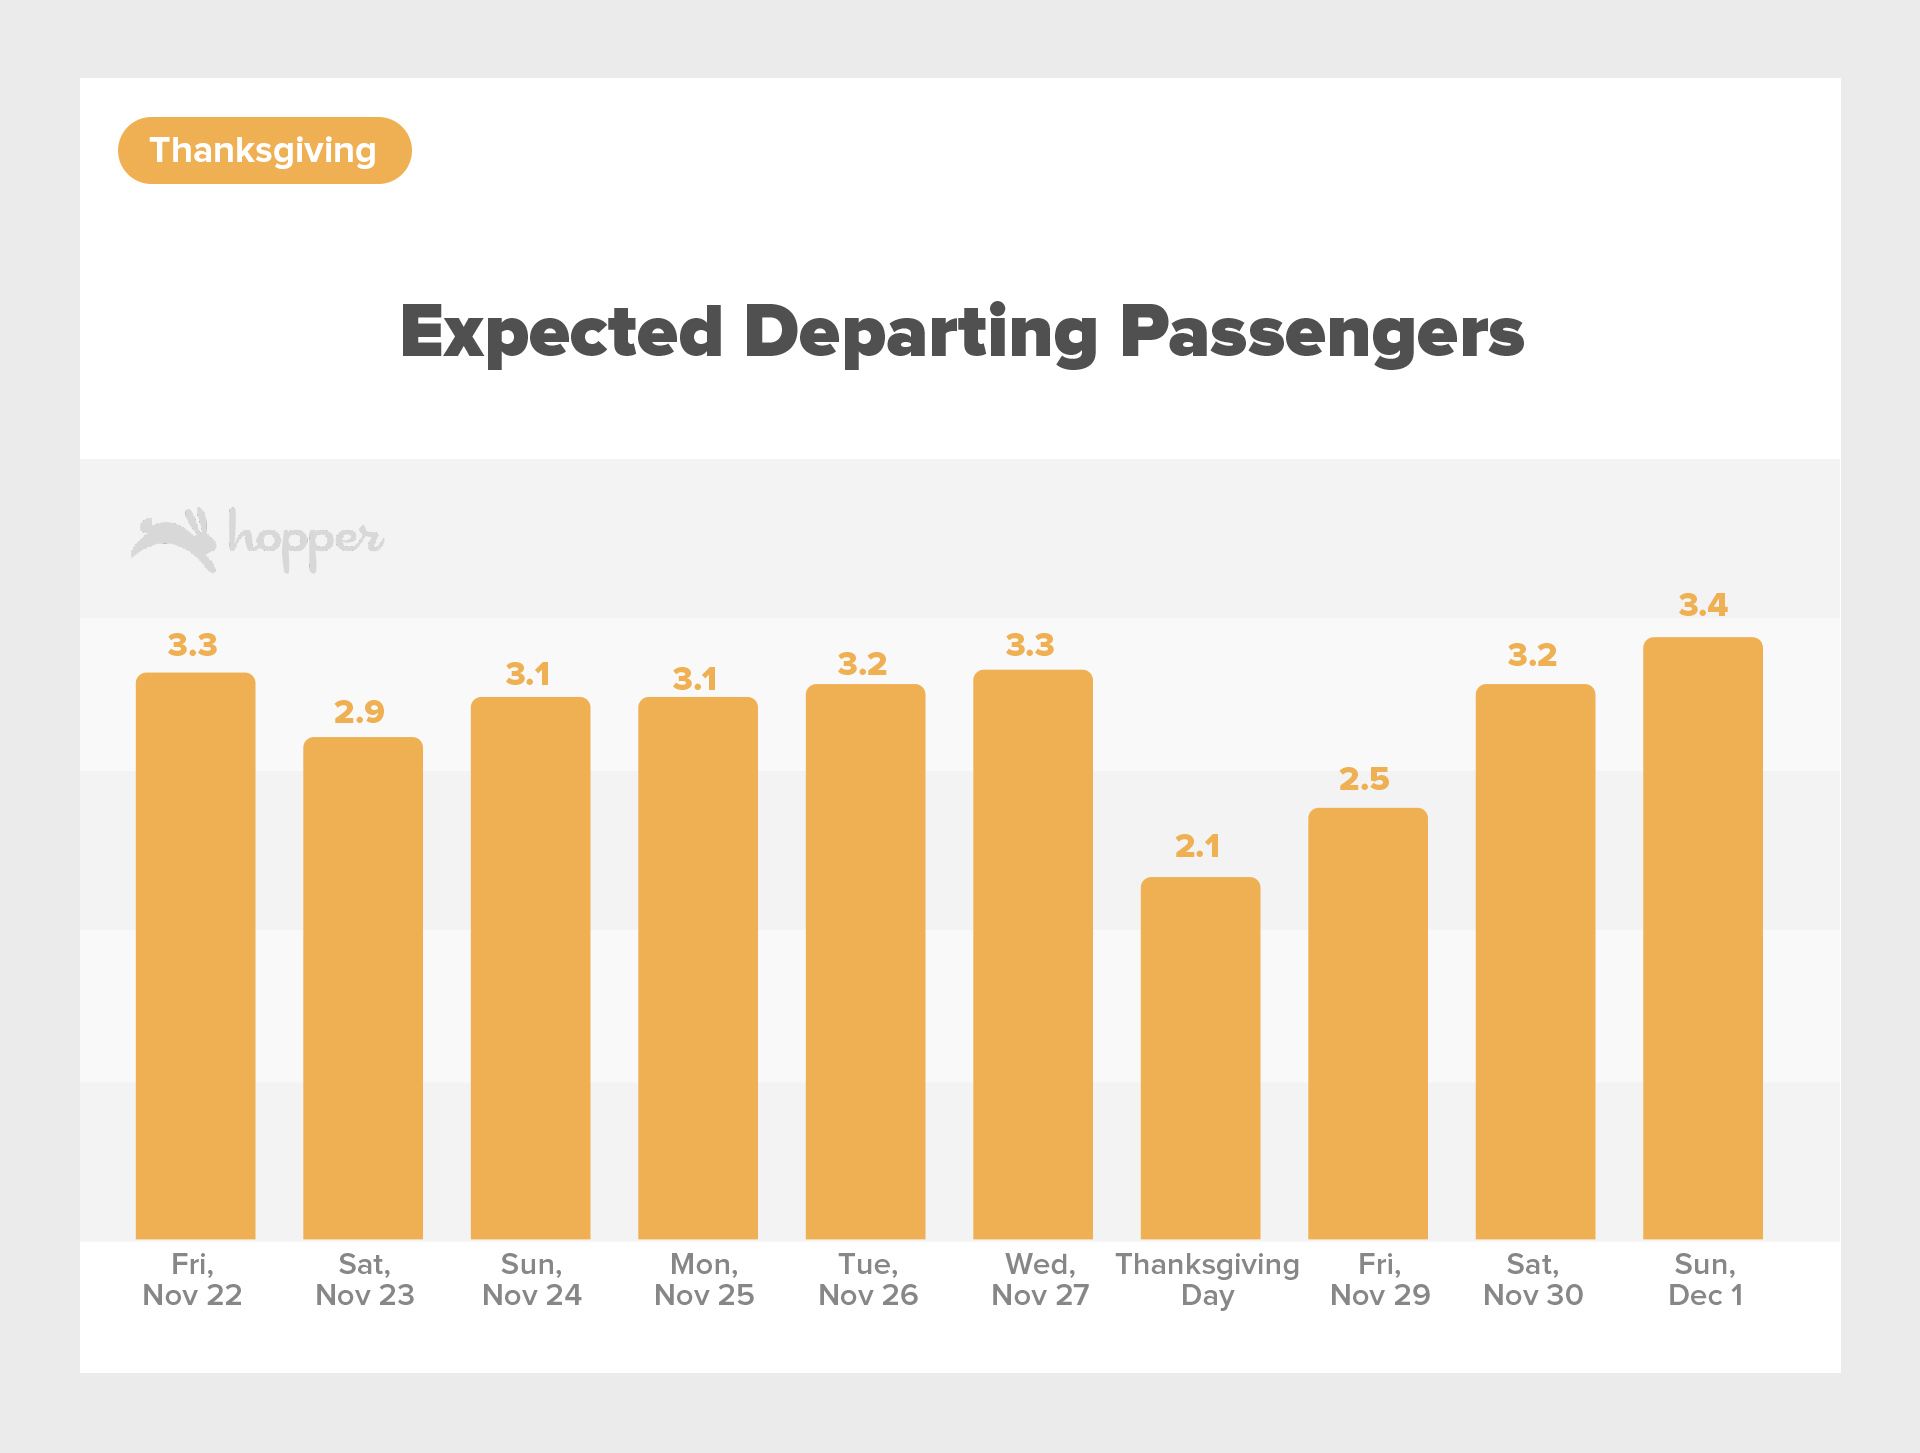 HolidayTrafficReport-Nov2019Thanksgiving ExpectedDepartingPassengers